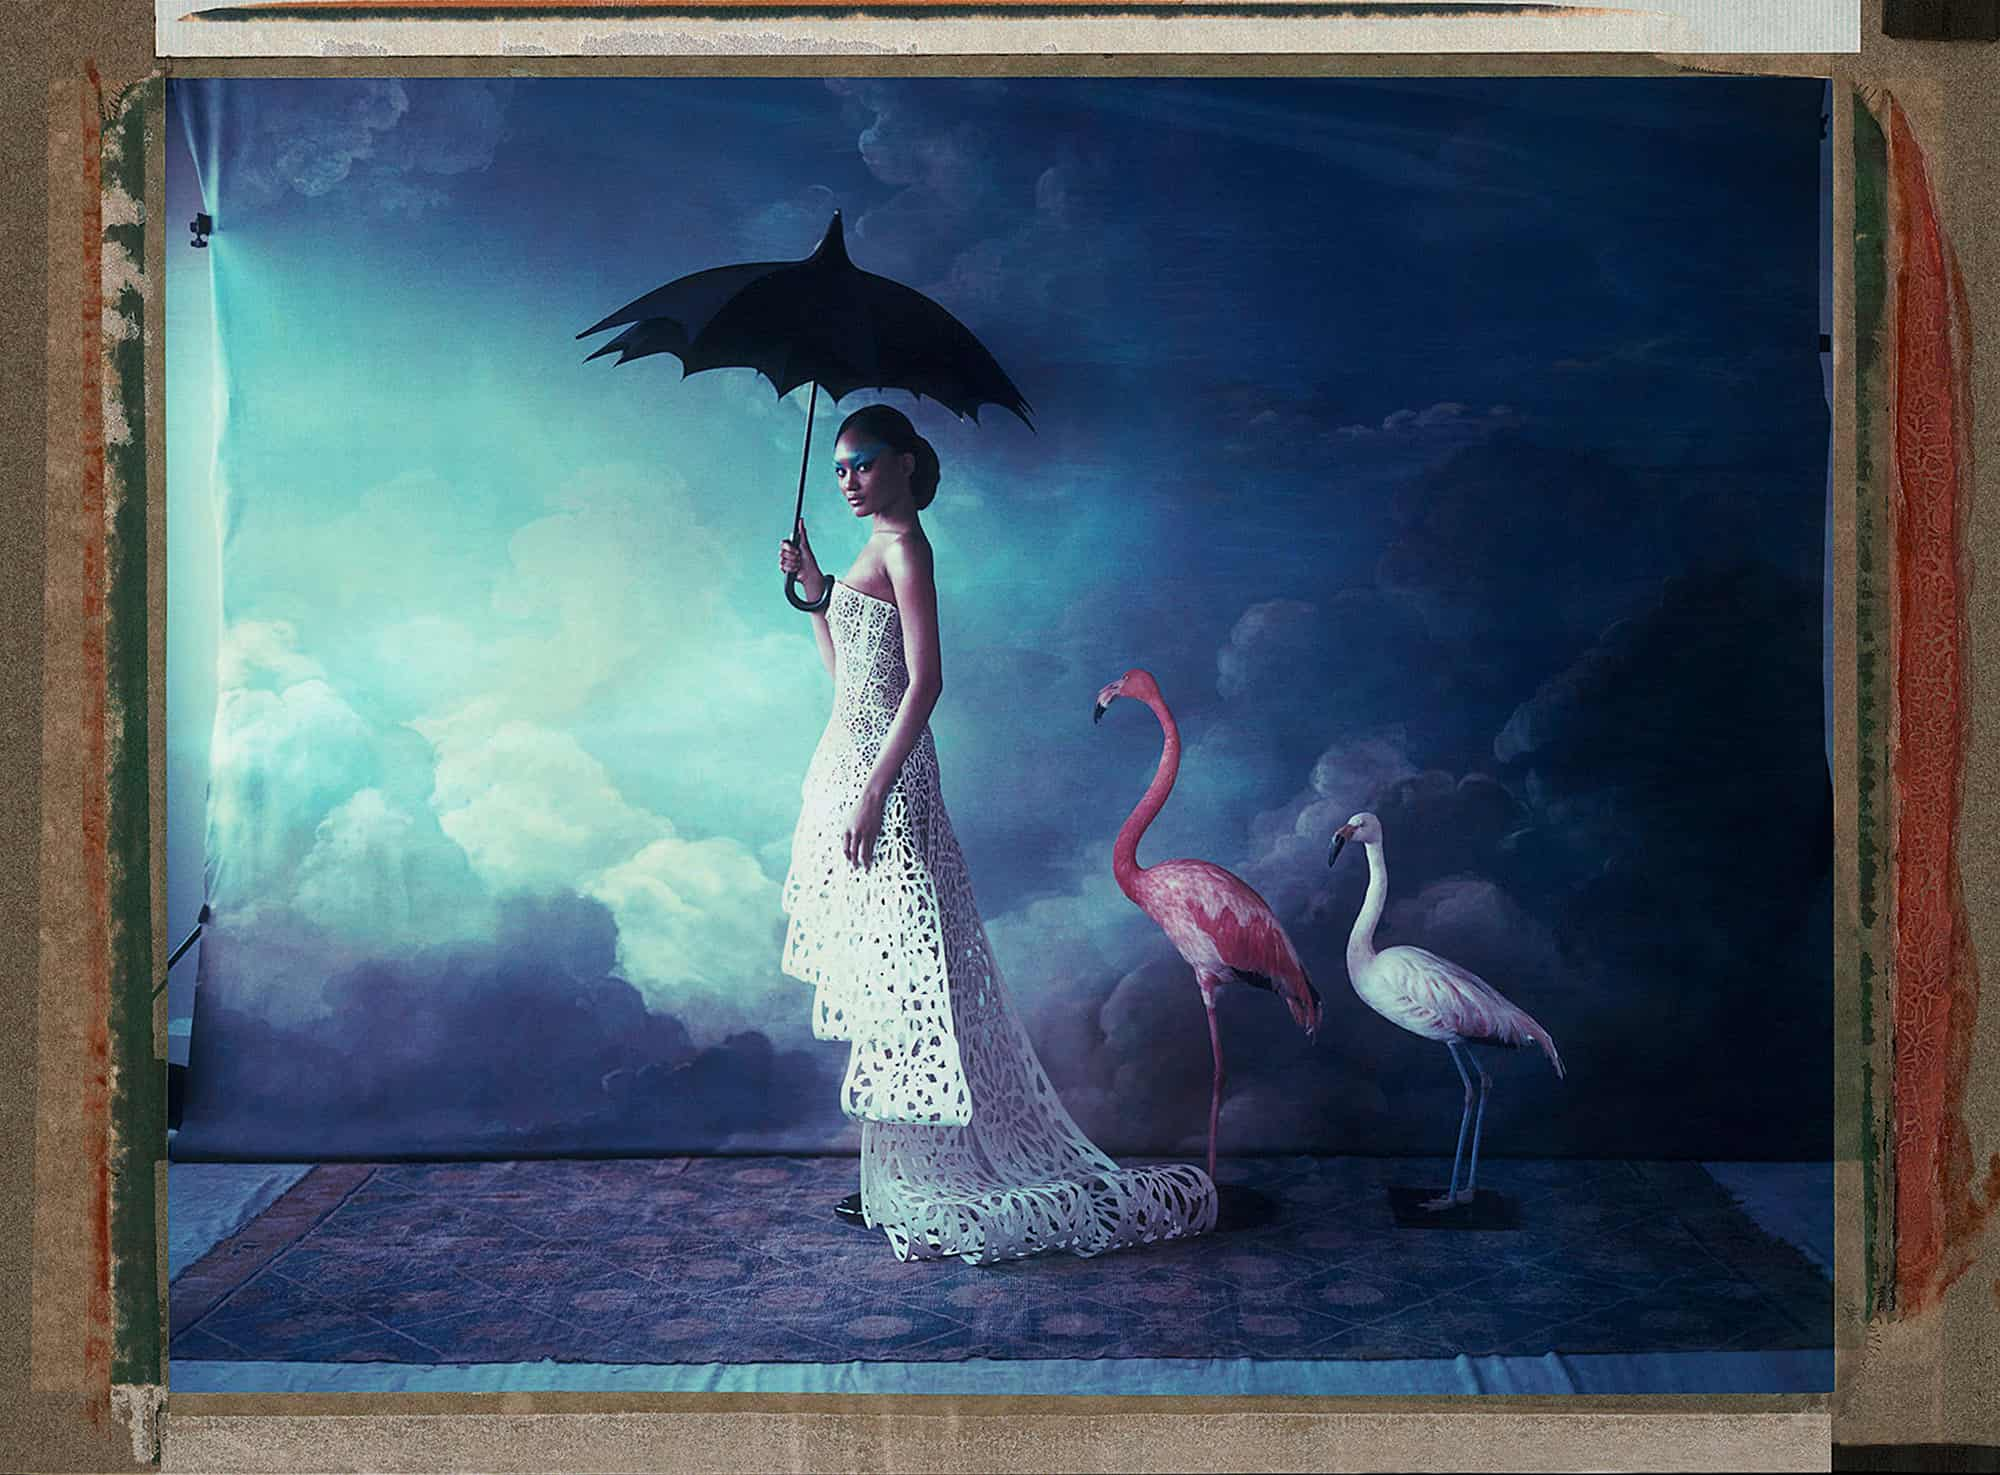 Fine art color photography of a fashion model wearing haute couture by Rani al Ali, with flamingos. Hand-painted backdrop with sky.